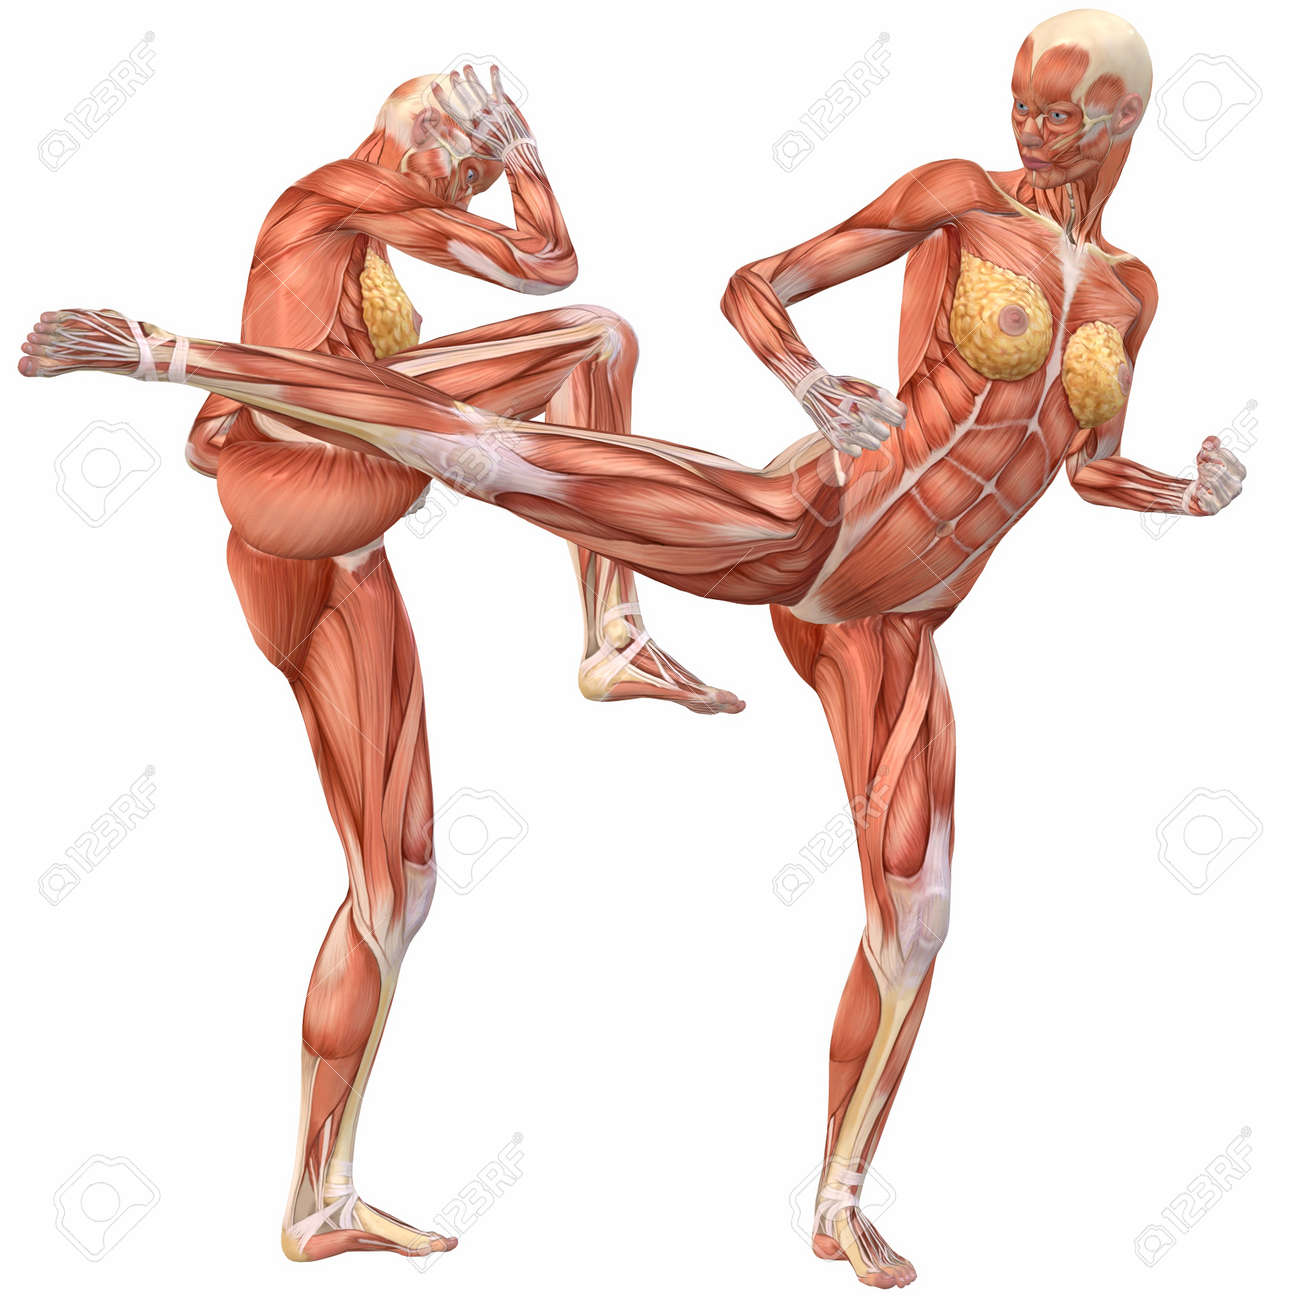 Female Human Body Anatomy Street Fight Stock Photo Picture And Diagram 4115601